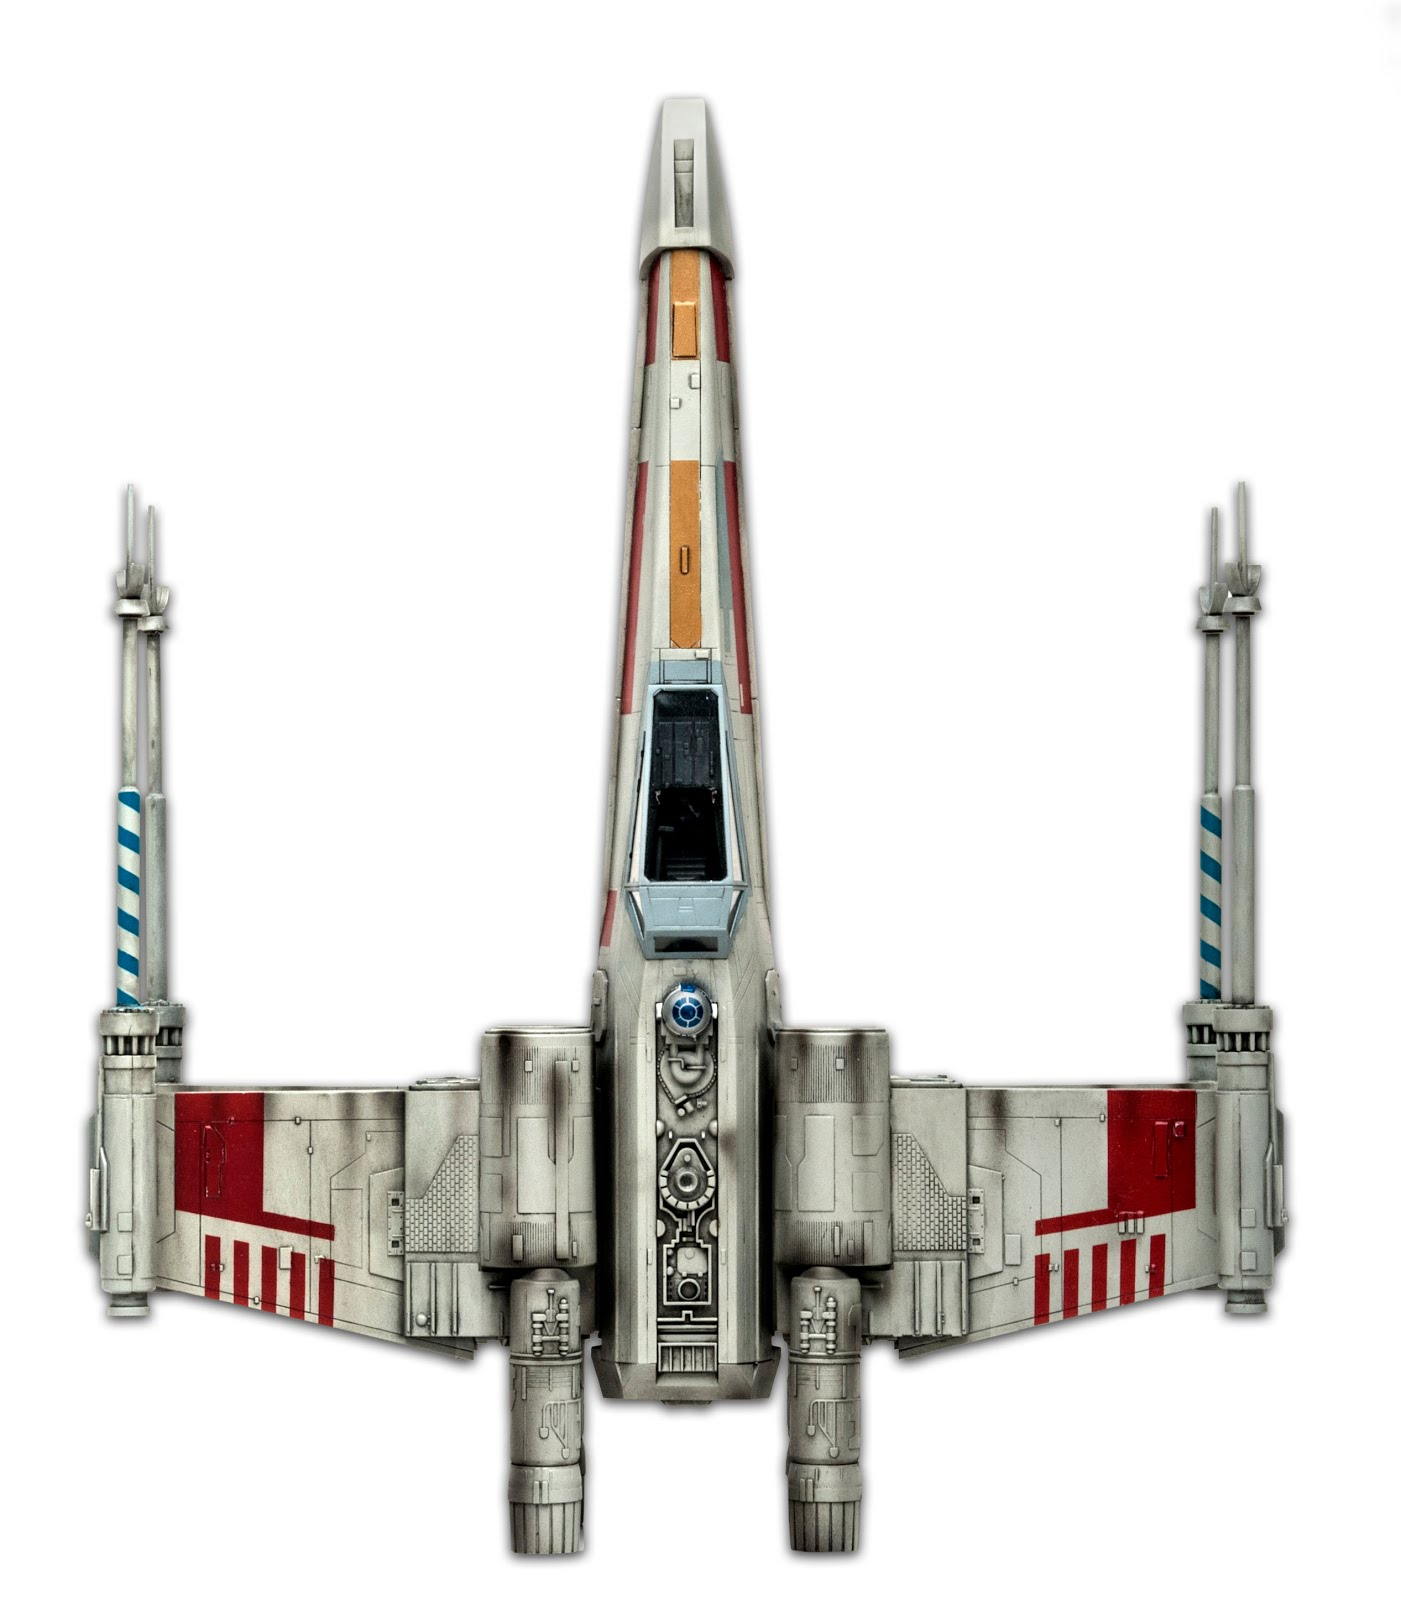 Theswca blog exclusive first look at revell 39 s master series of models